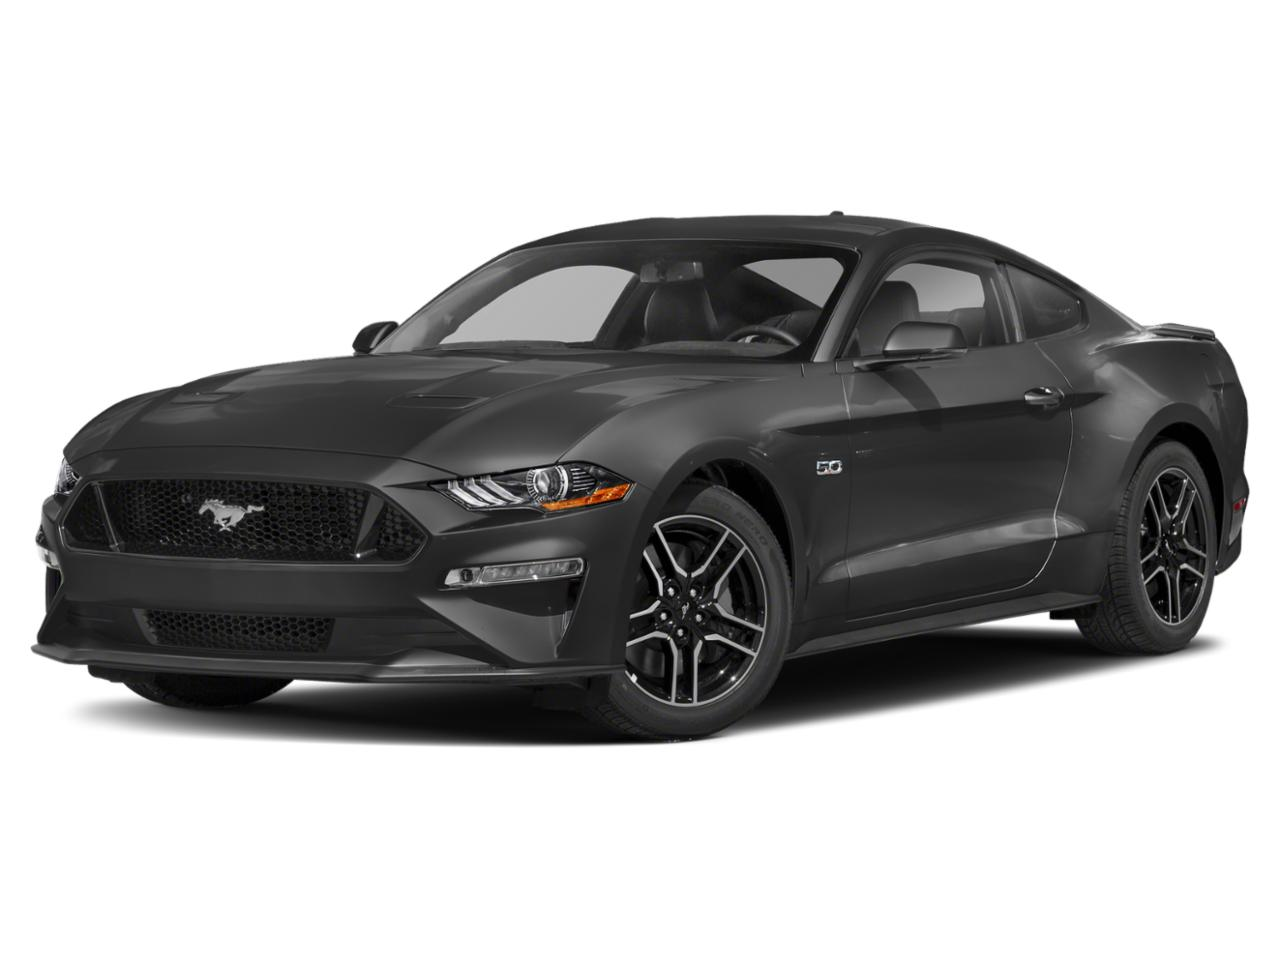 2021 Ford Mustang Vehicle Photo in Oshkosh, WI 54901-1209